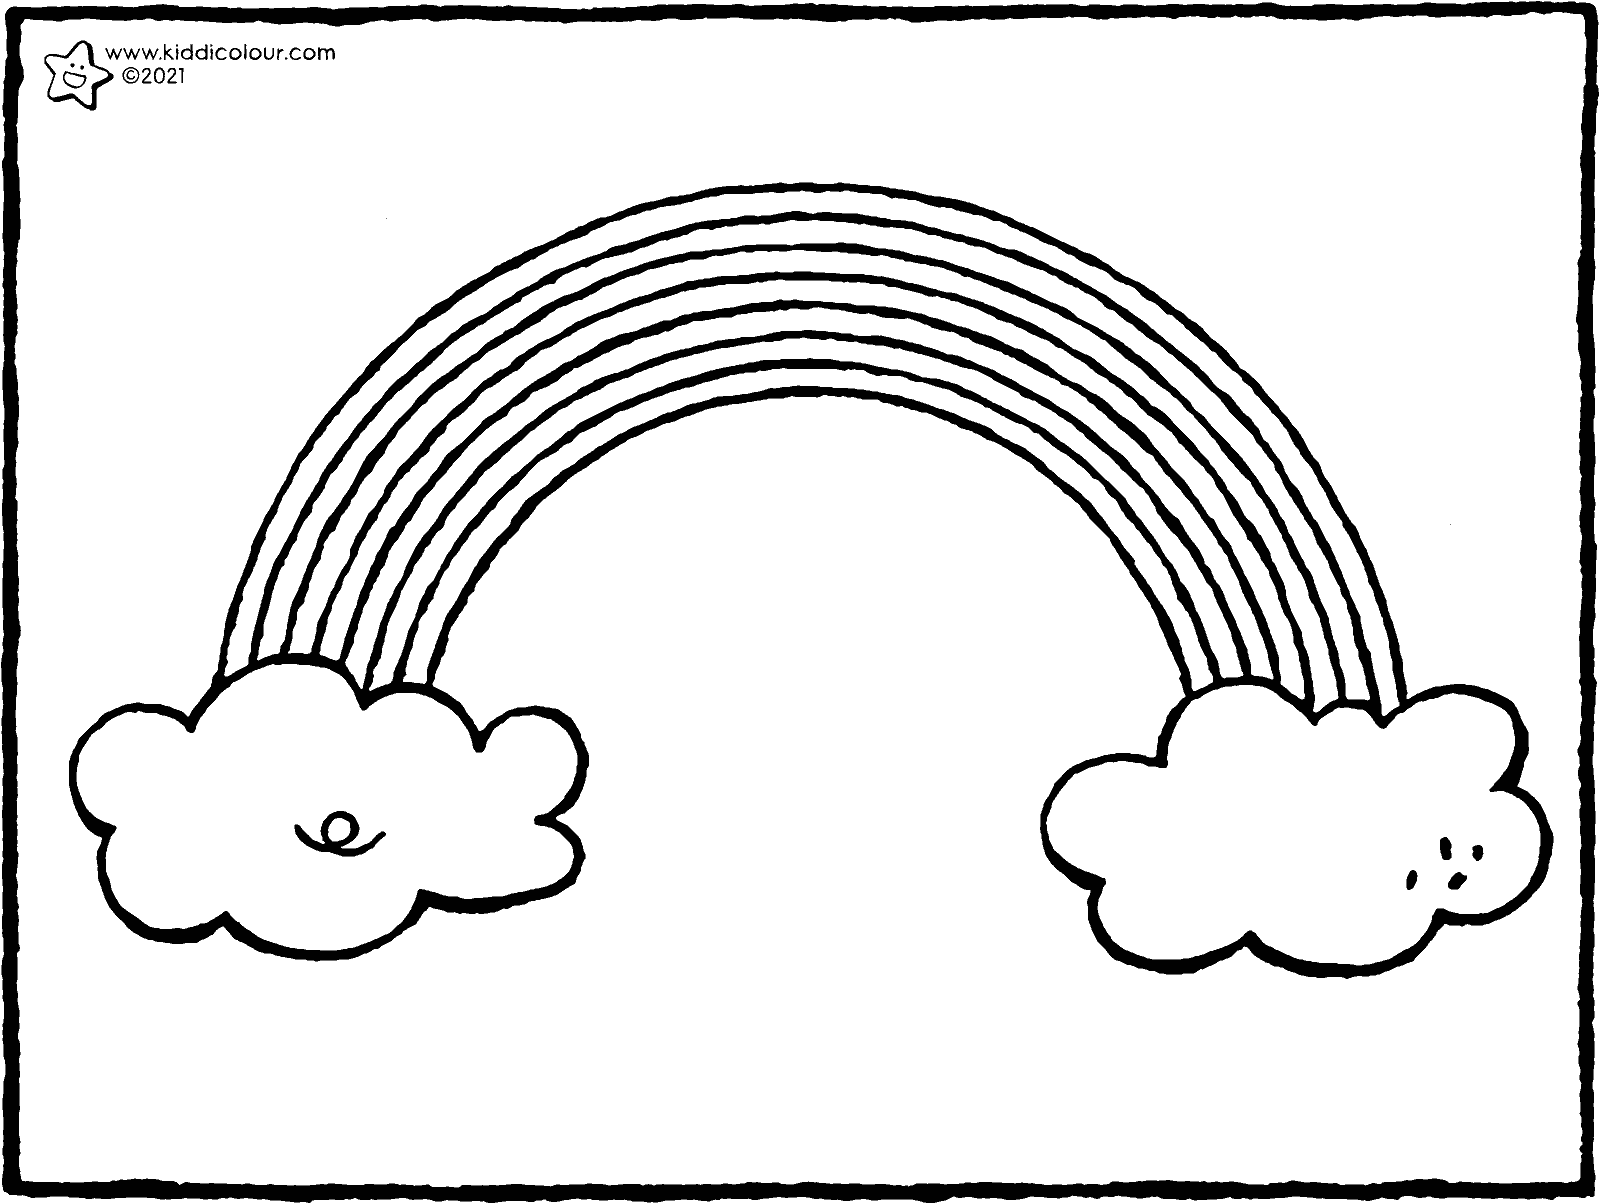 rainbow colouring page drawing picture 01k